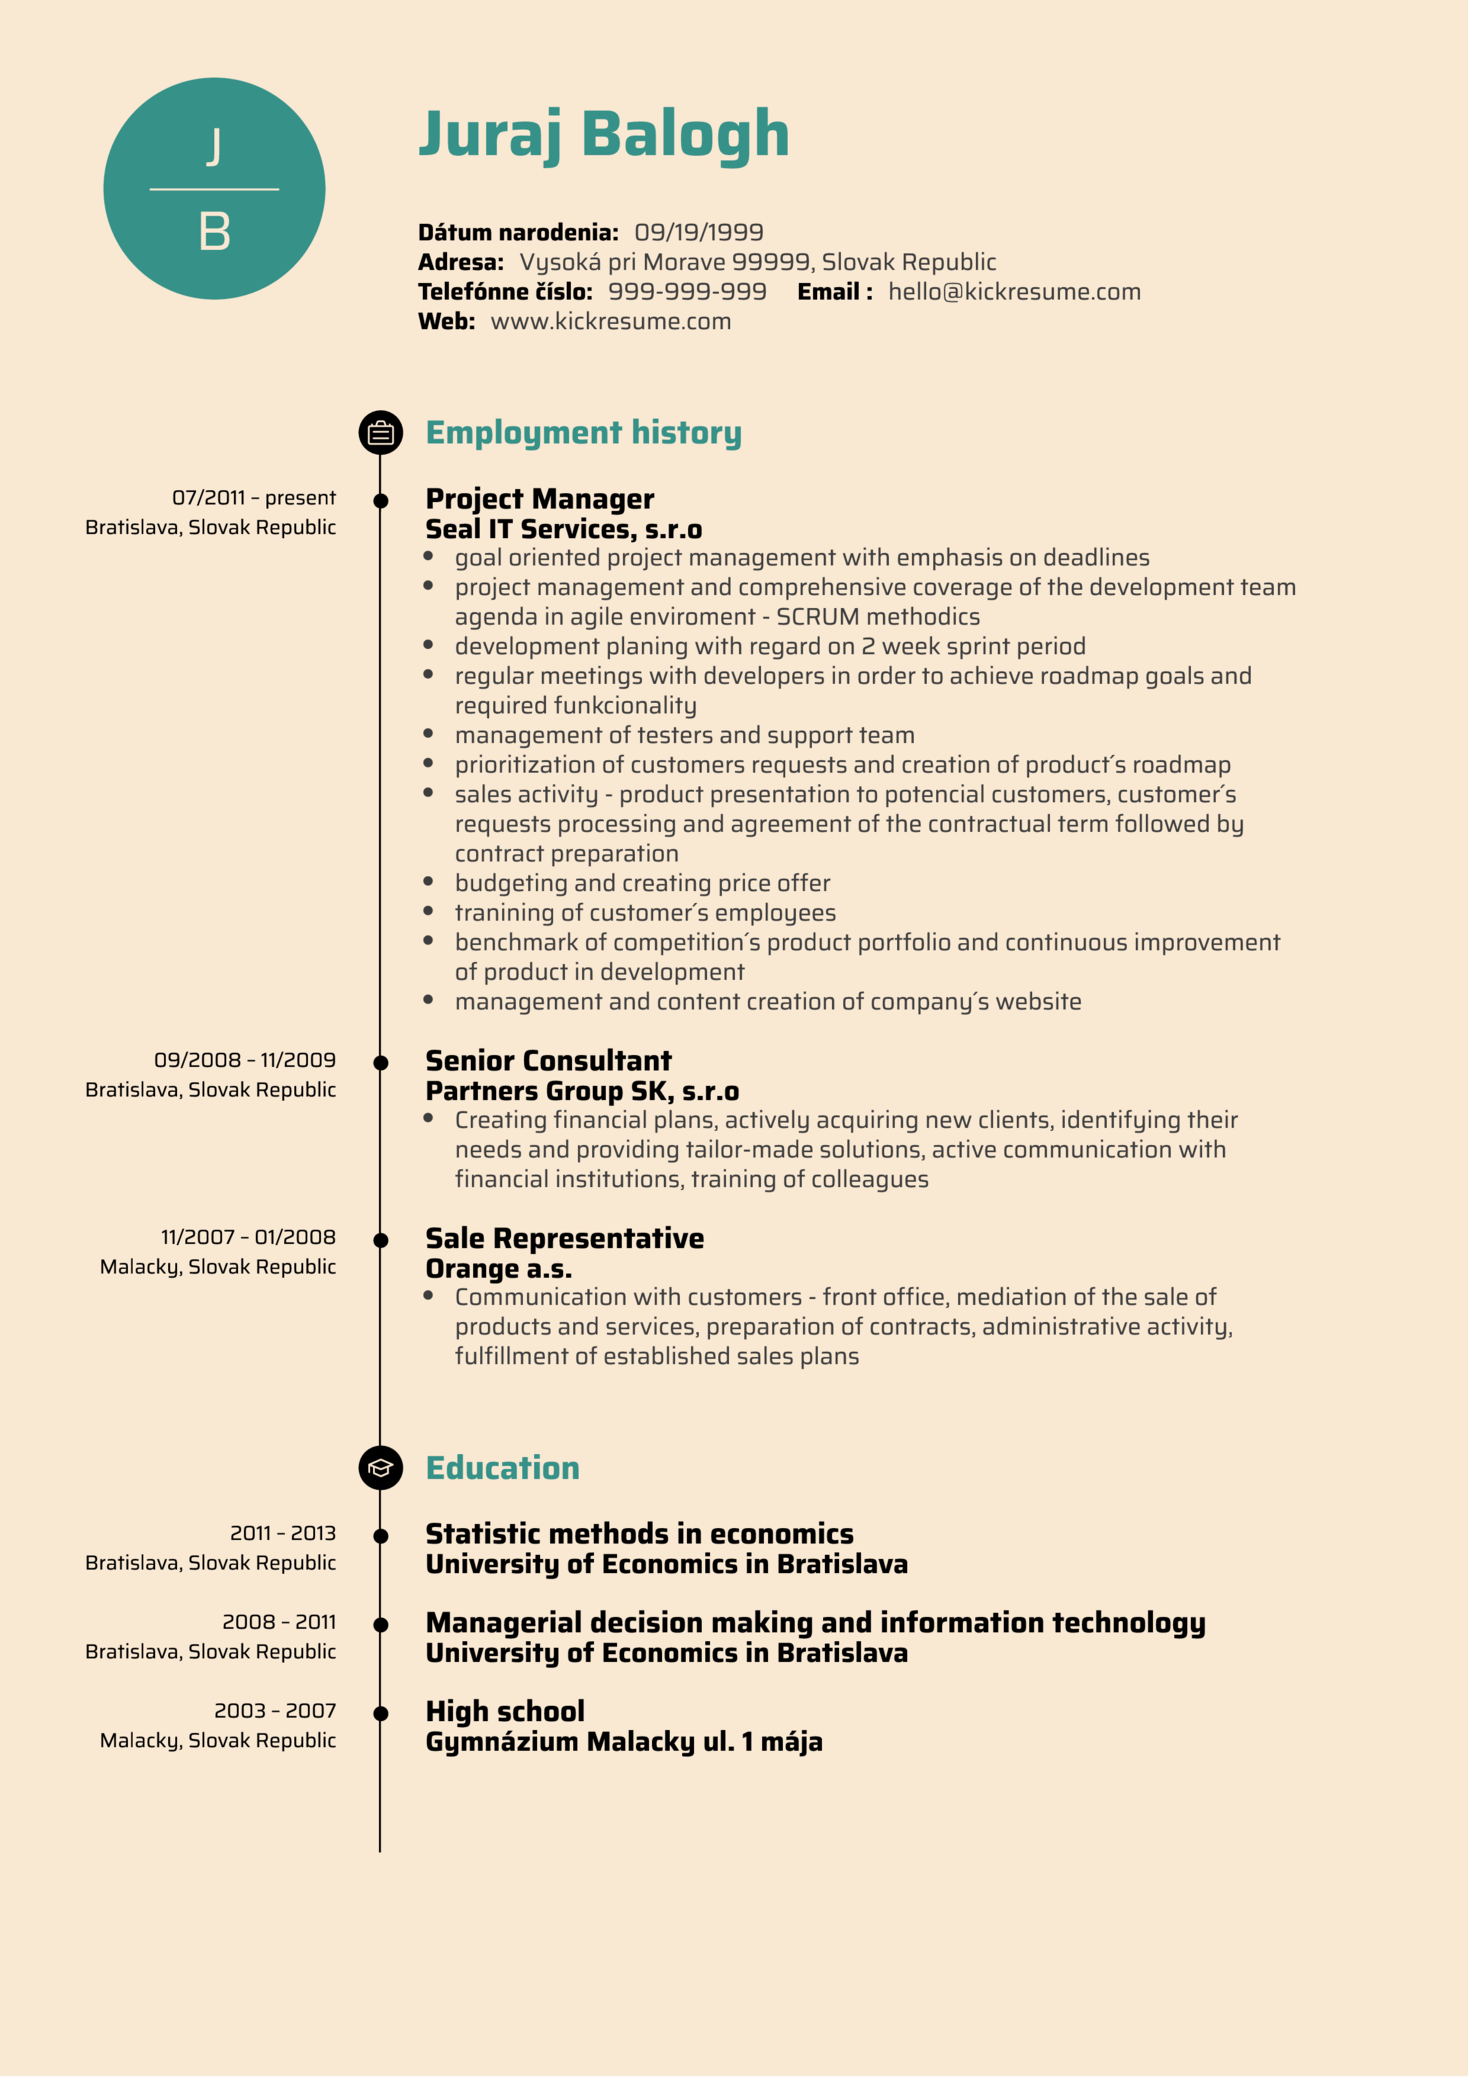 Product Manager Resume Example (Part 1)